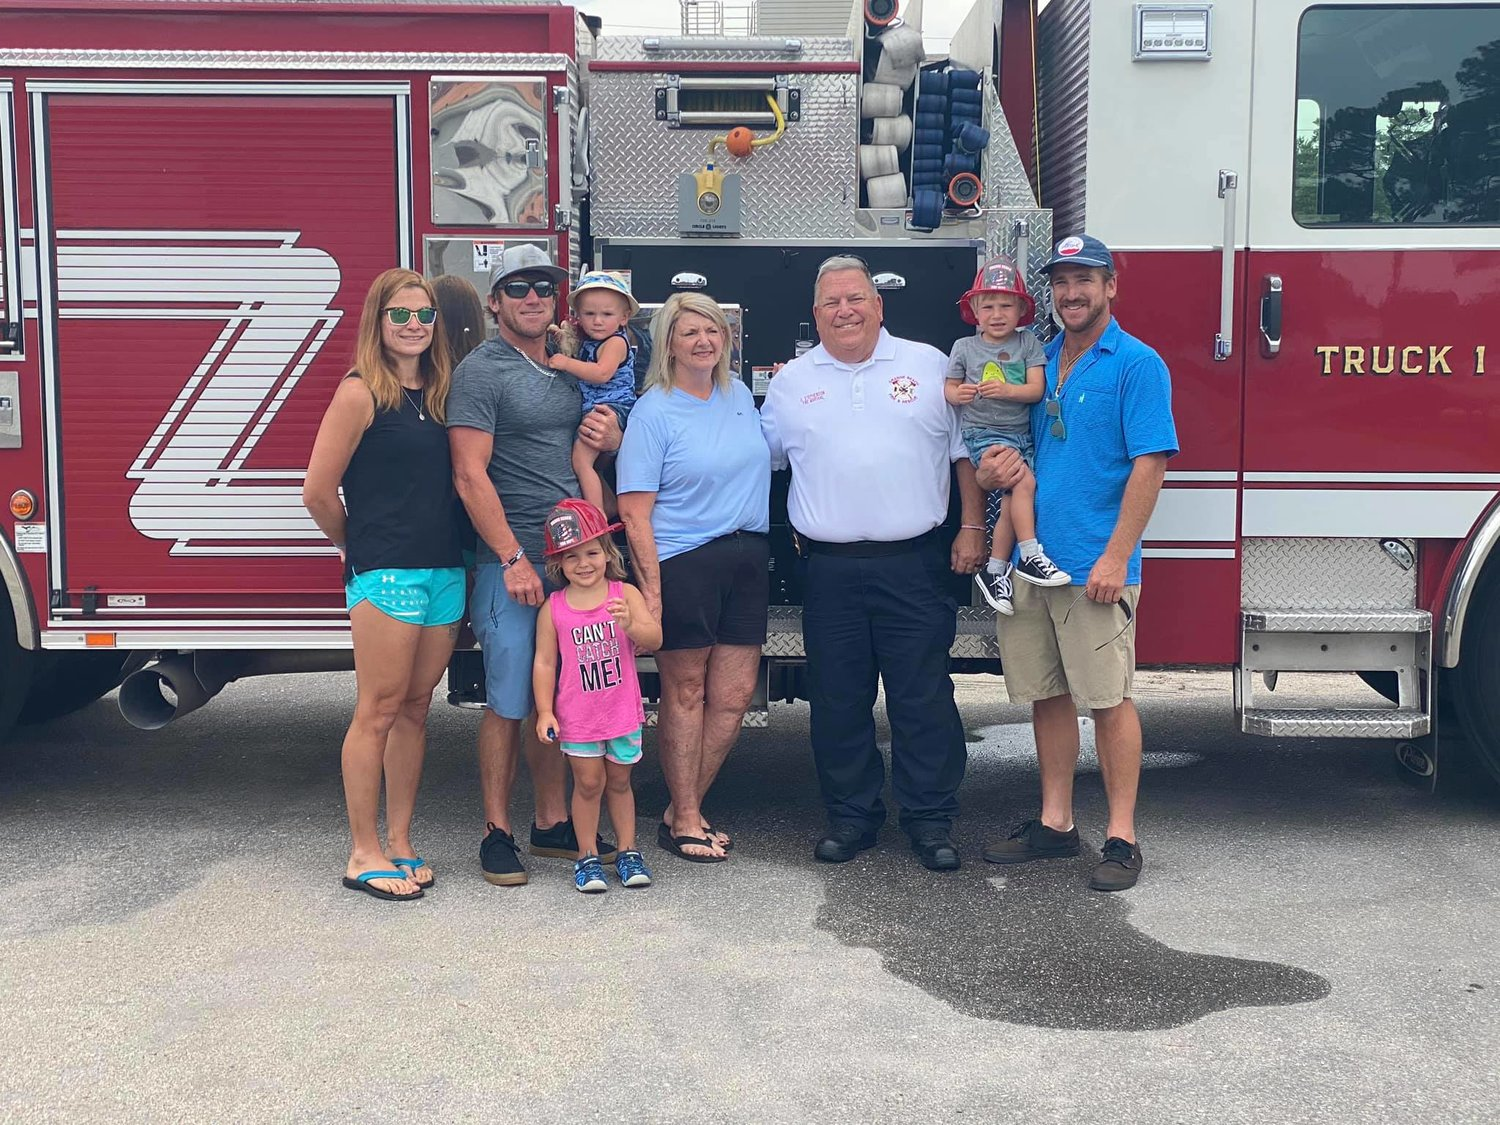 After 21 years of service to the City of Orange Beach, Fire Marshal Craig Stephenson received a surprise send-off that left him without words.